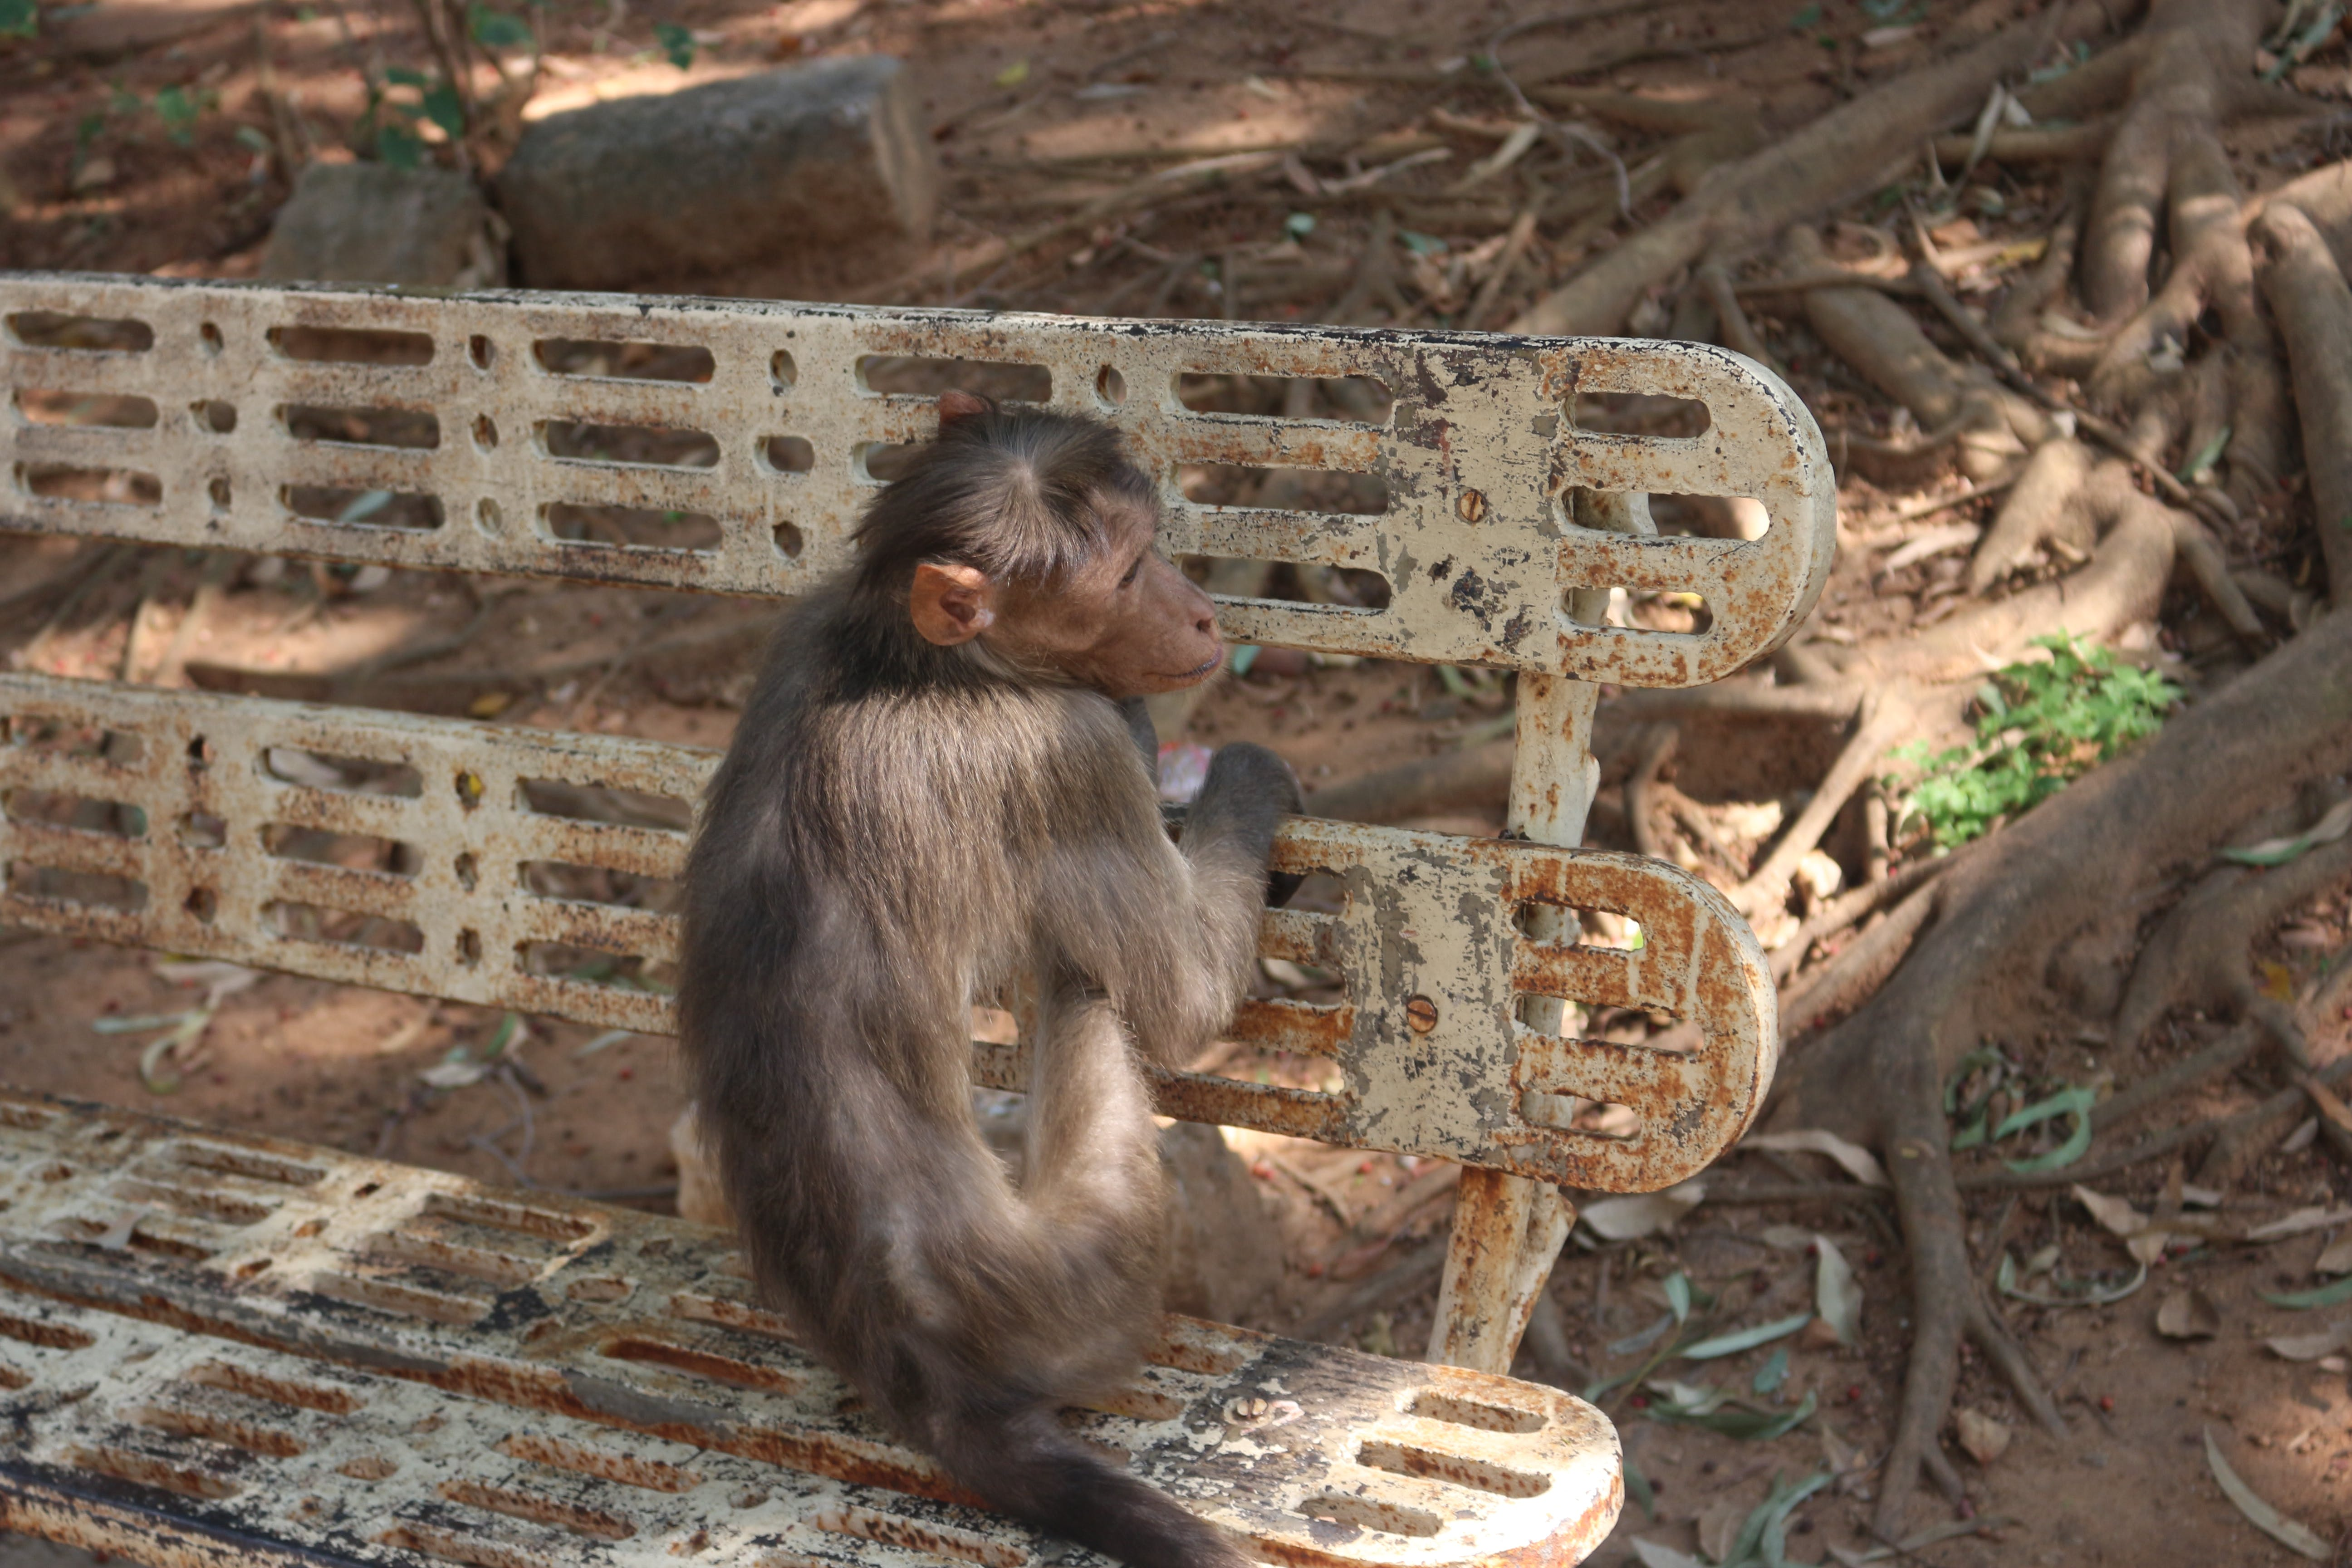 Monkey Trap on Outdoor Bench